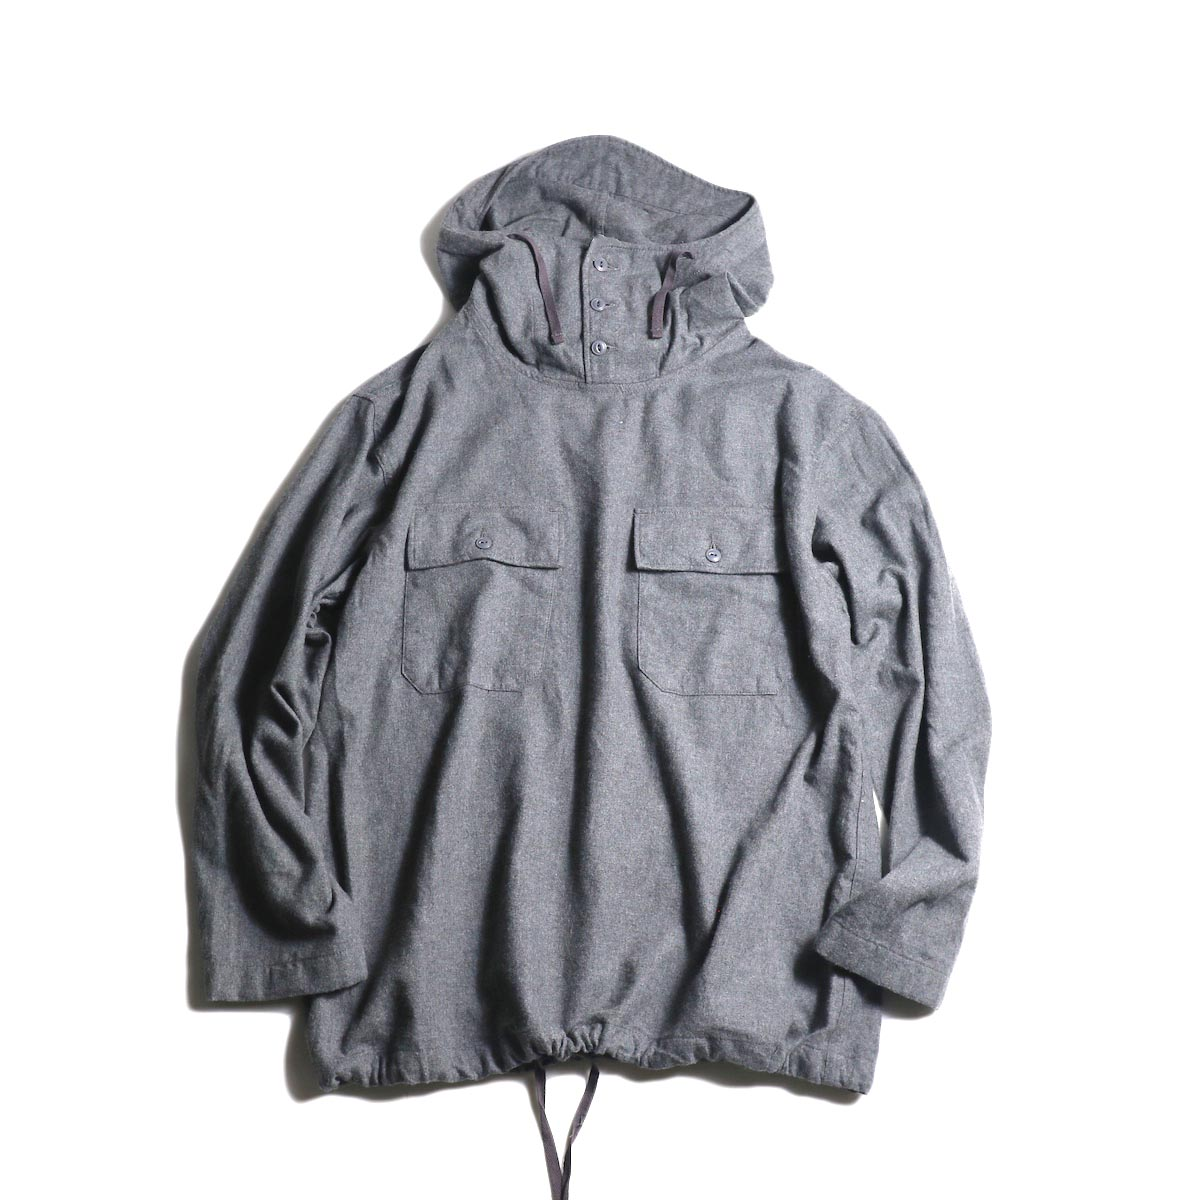 Engineered Garments / Cagoule Shirt -Brushed Twill (Dk.Gray)